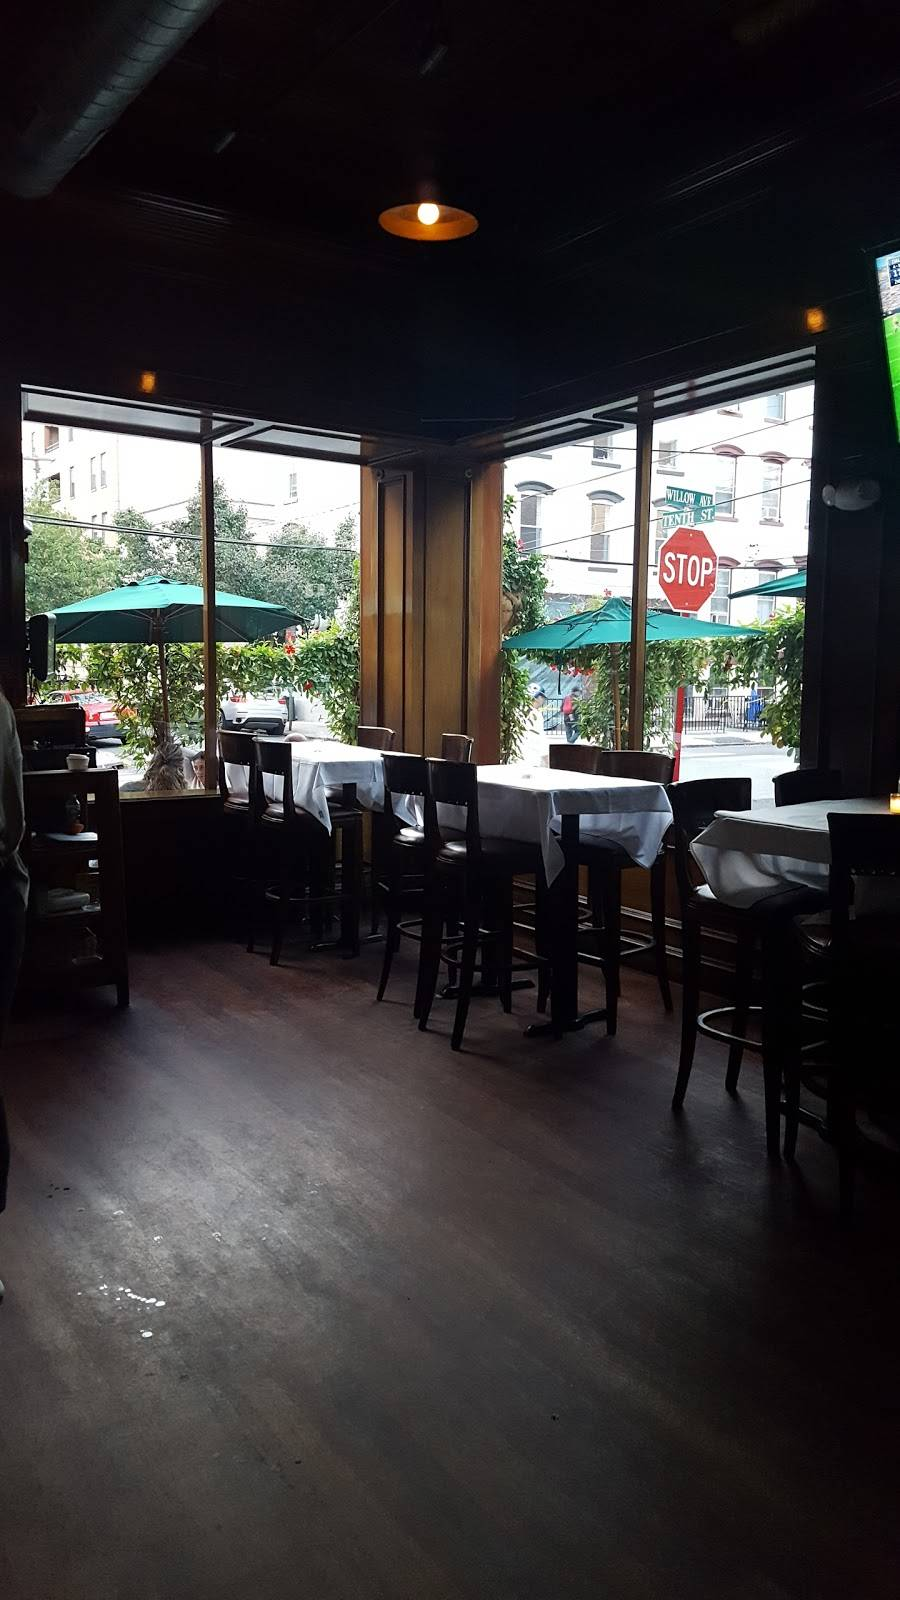 10th & Willow Bar & Grill   restaurant   935 Willow Ave, Hoboken, NJ 07030, USA   2016532358 OR +1 201-653-2358